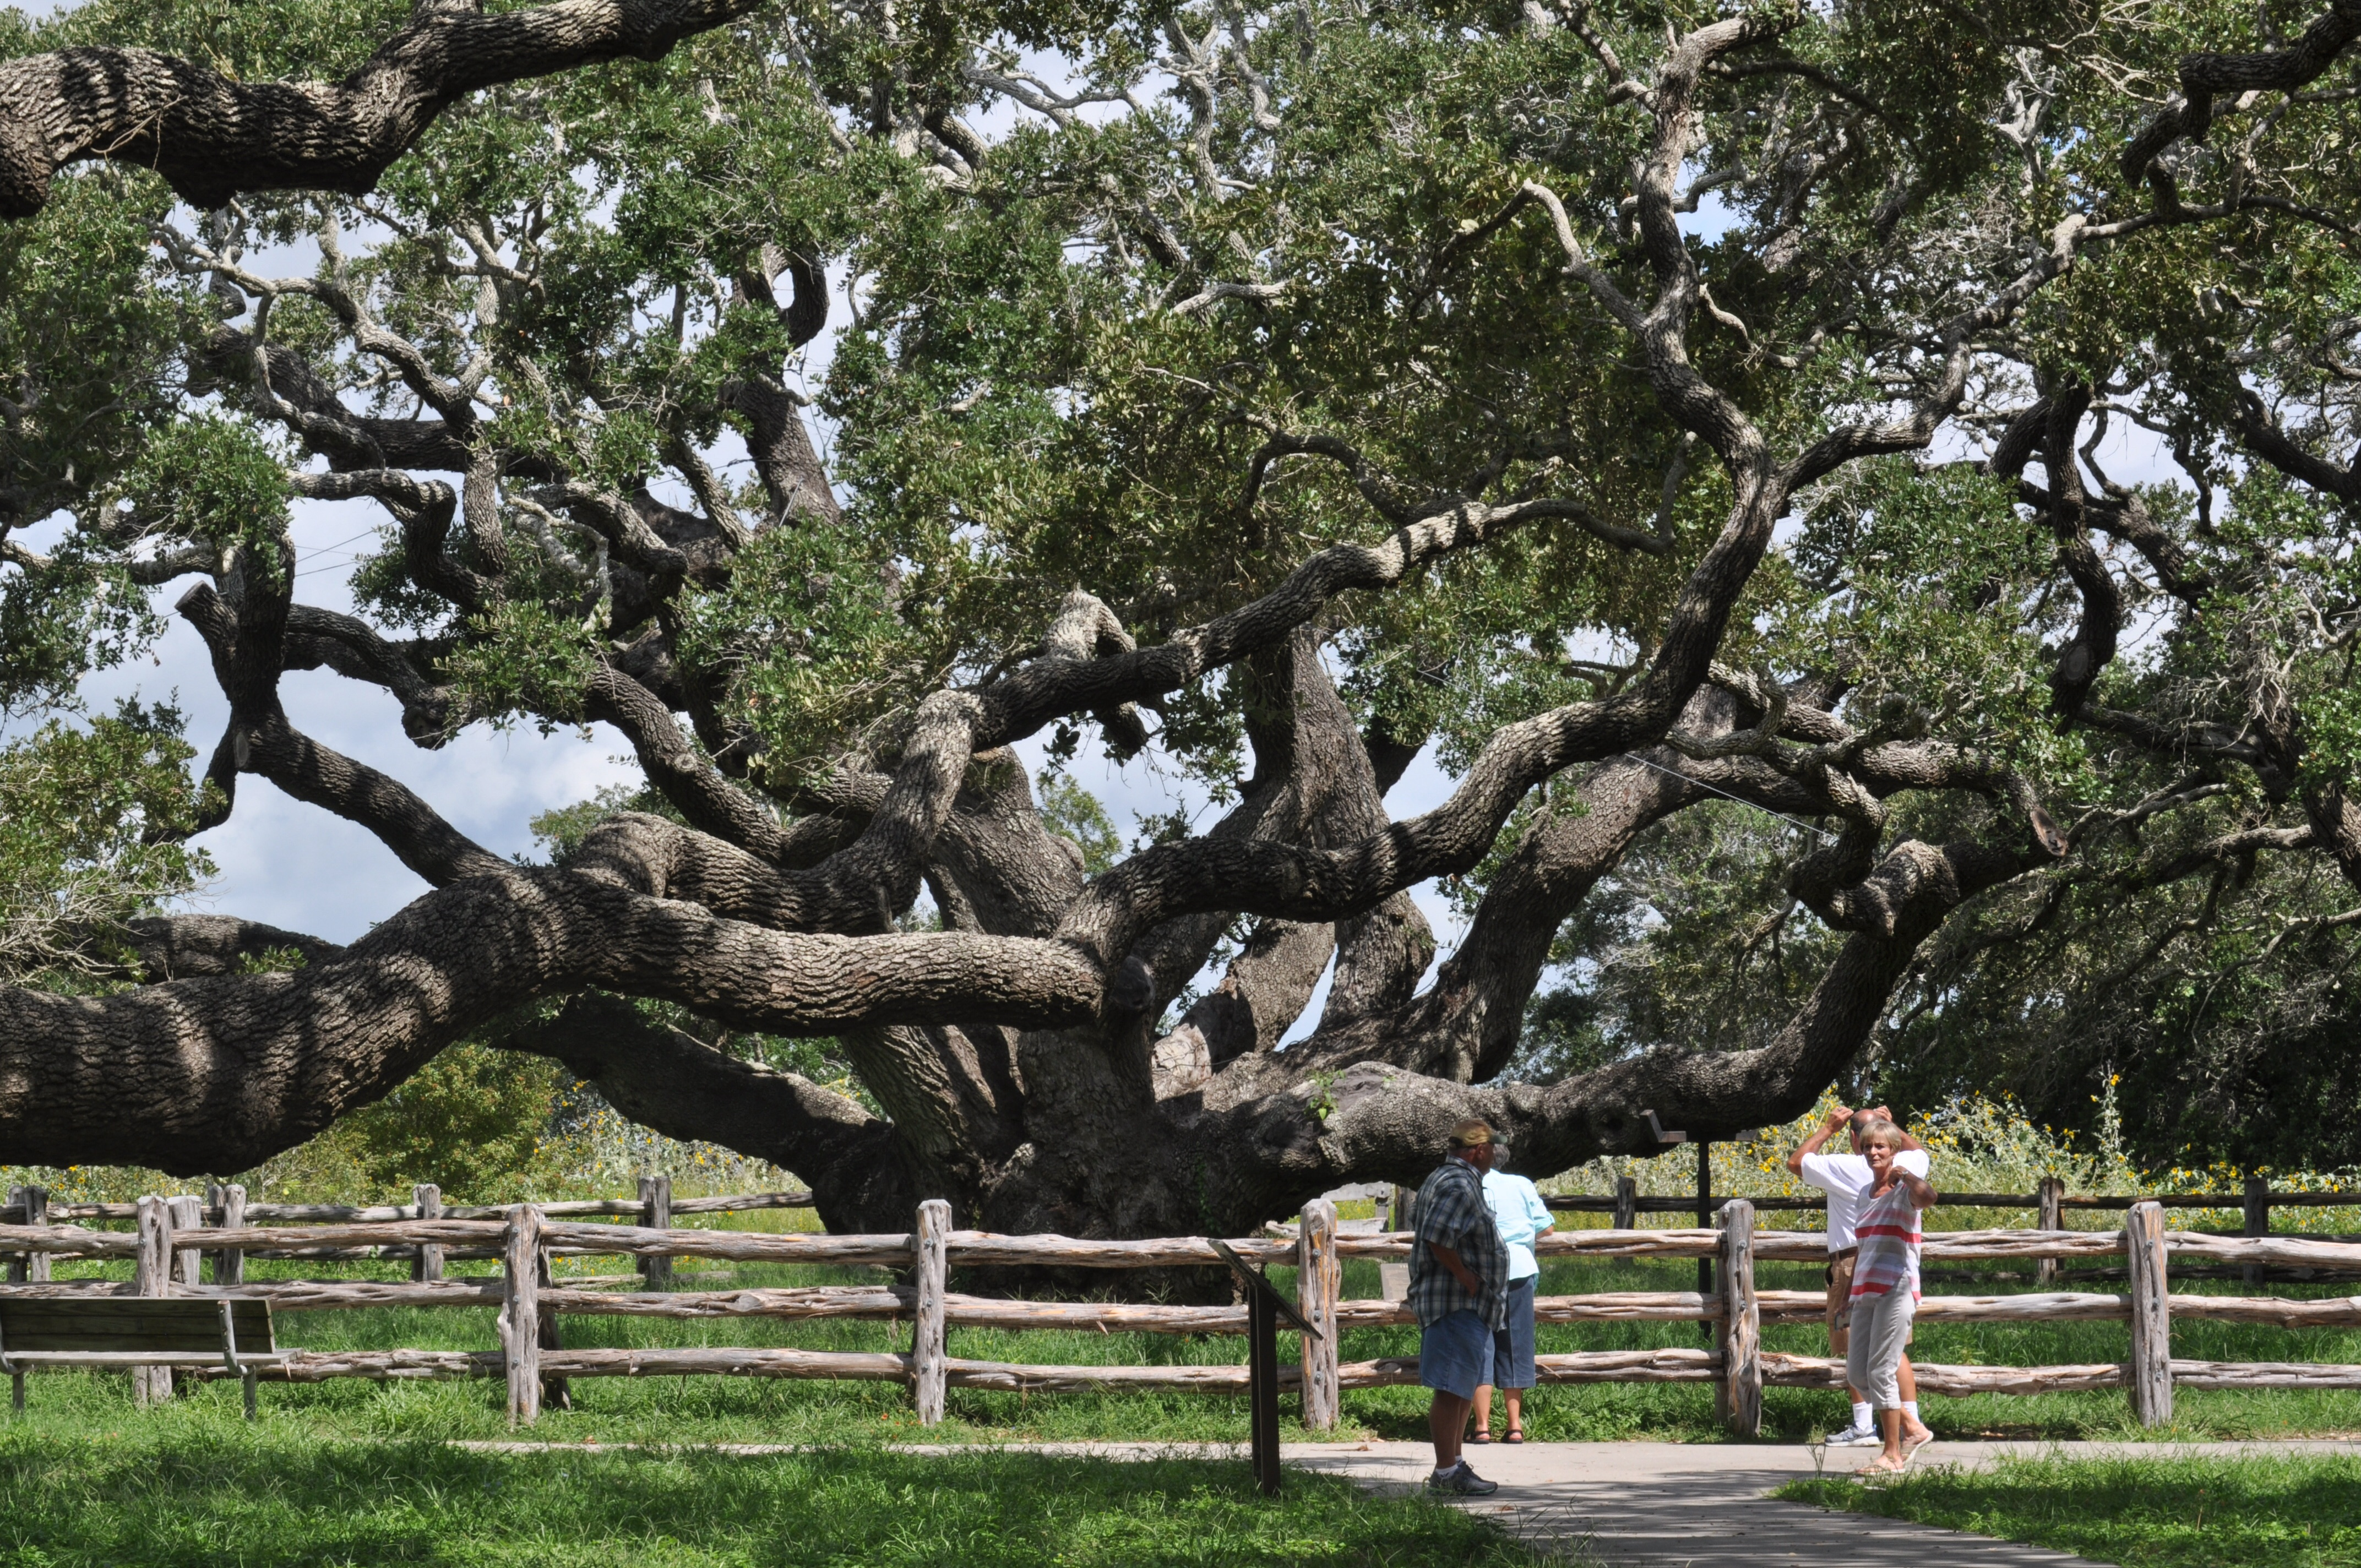 The Big Tree at Goose Island State Park